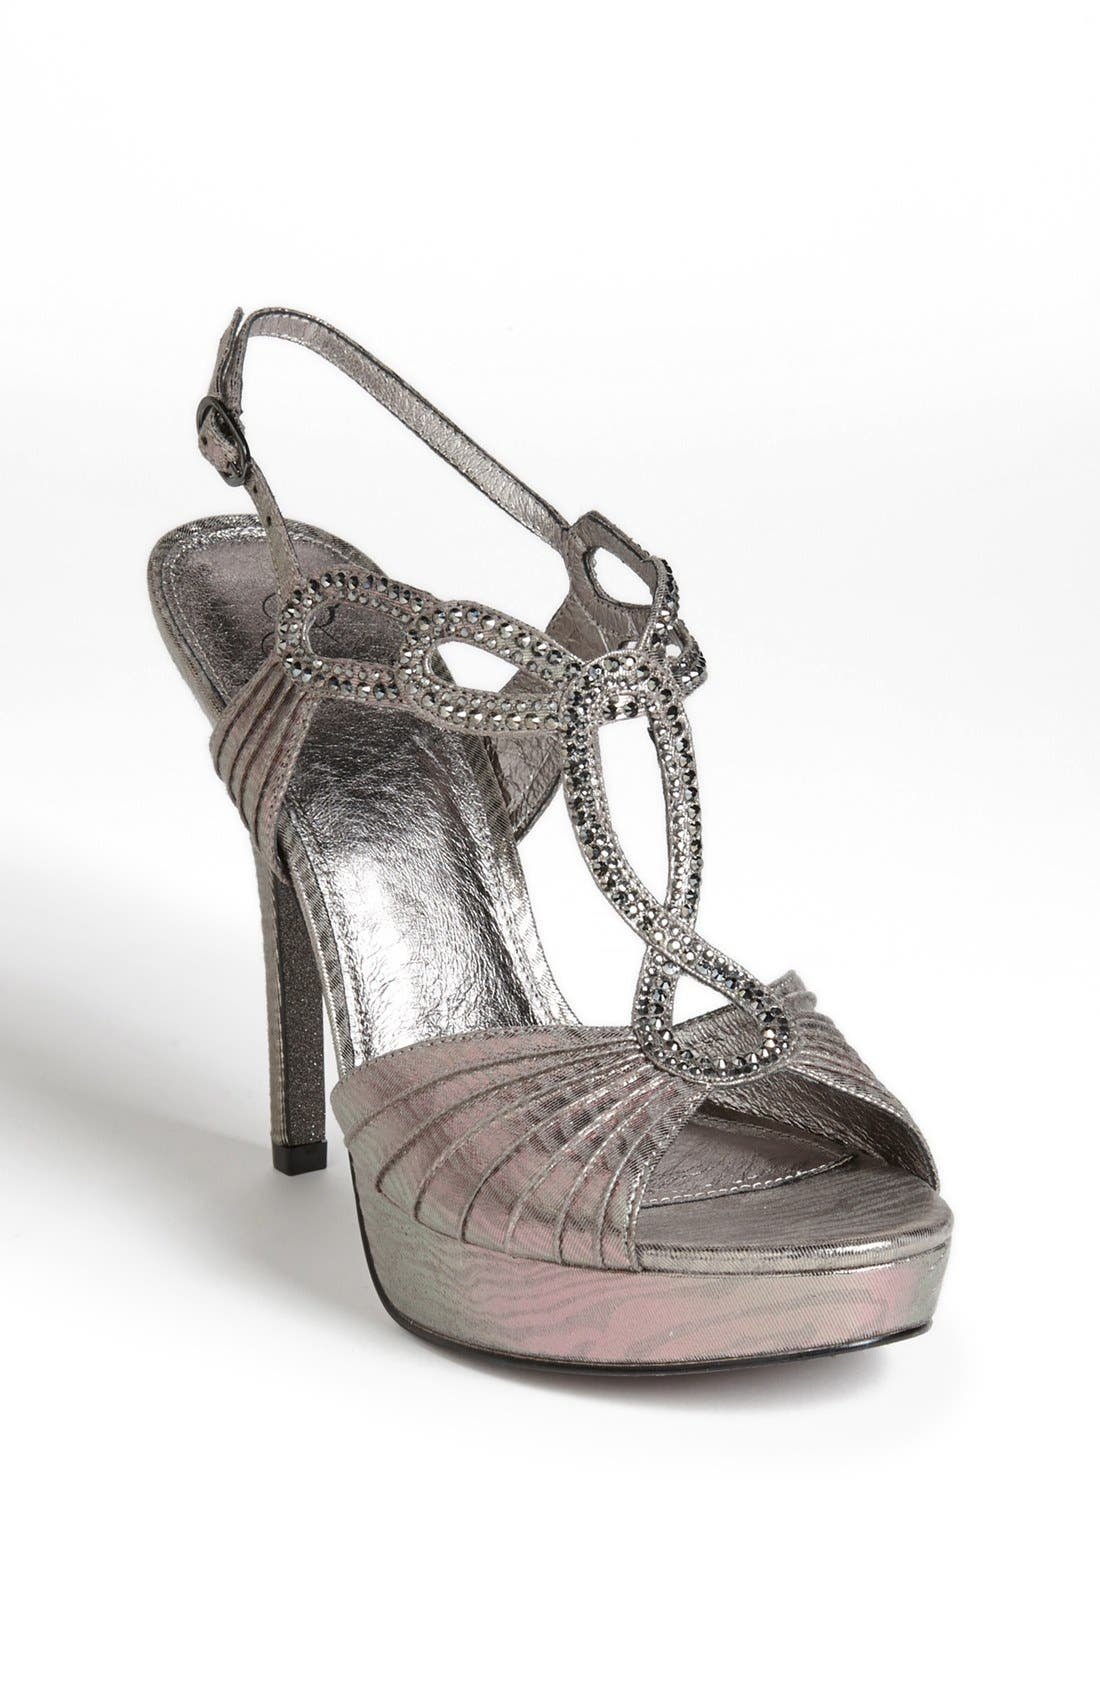 Main Image - Adrianna Papell 'Madalen' Sandal